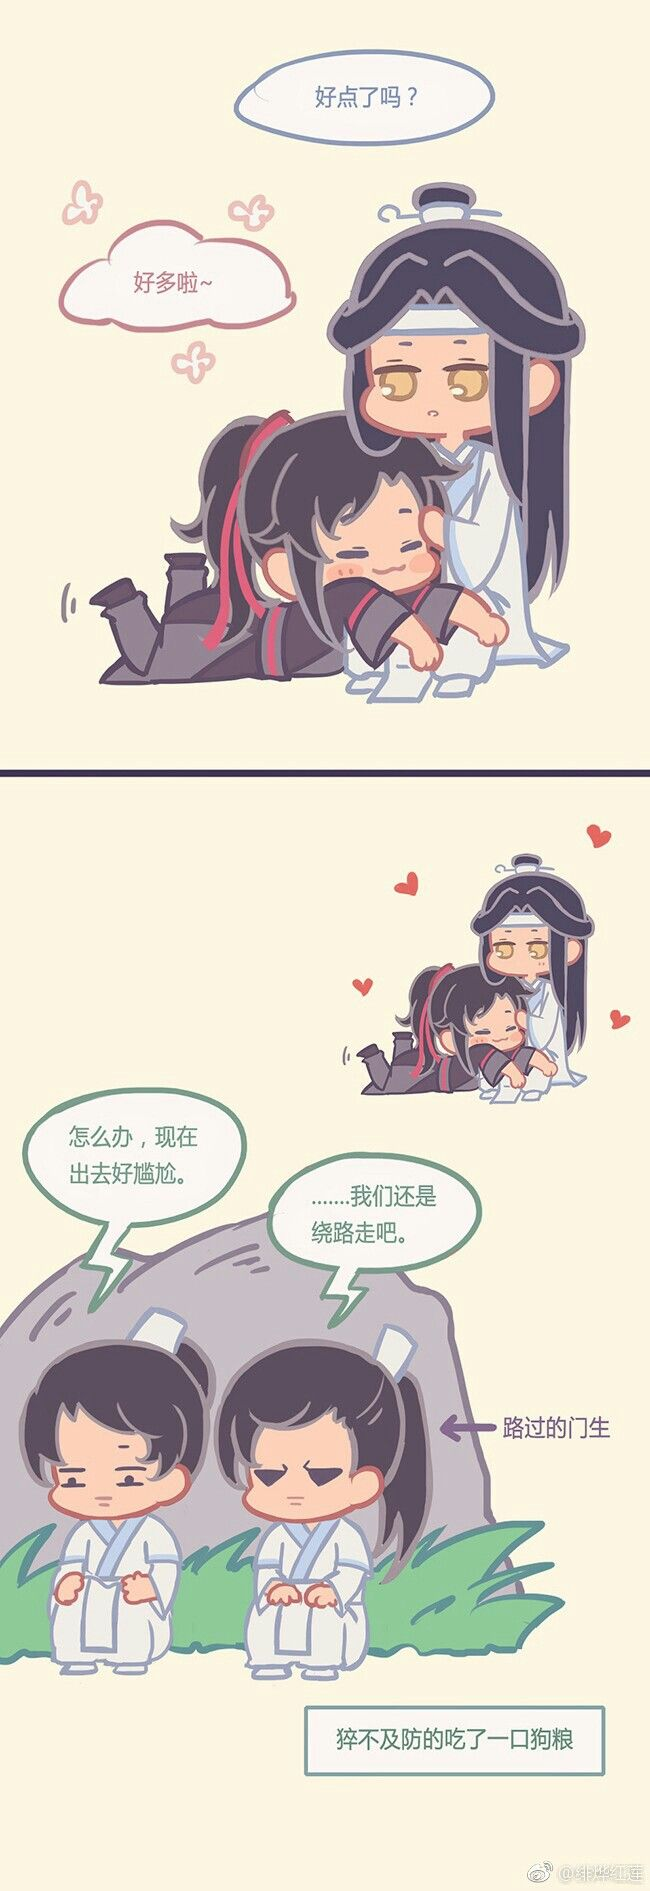 List Of Pinterest X Wuxian Pictures Pinterest X Wuxian Ideas